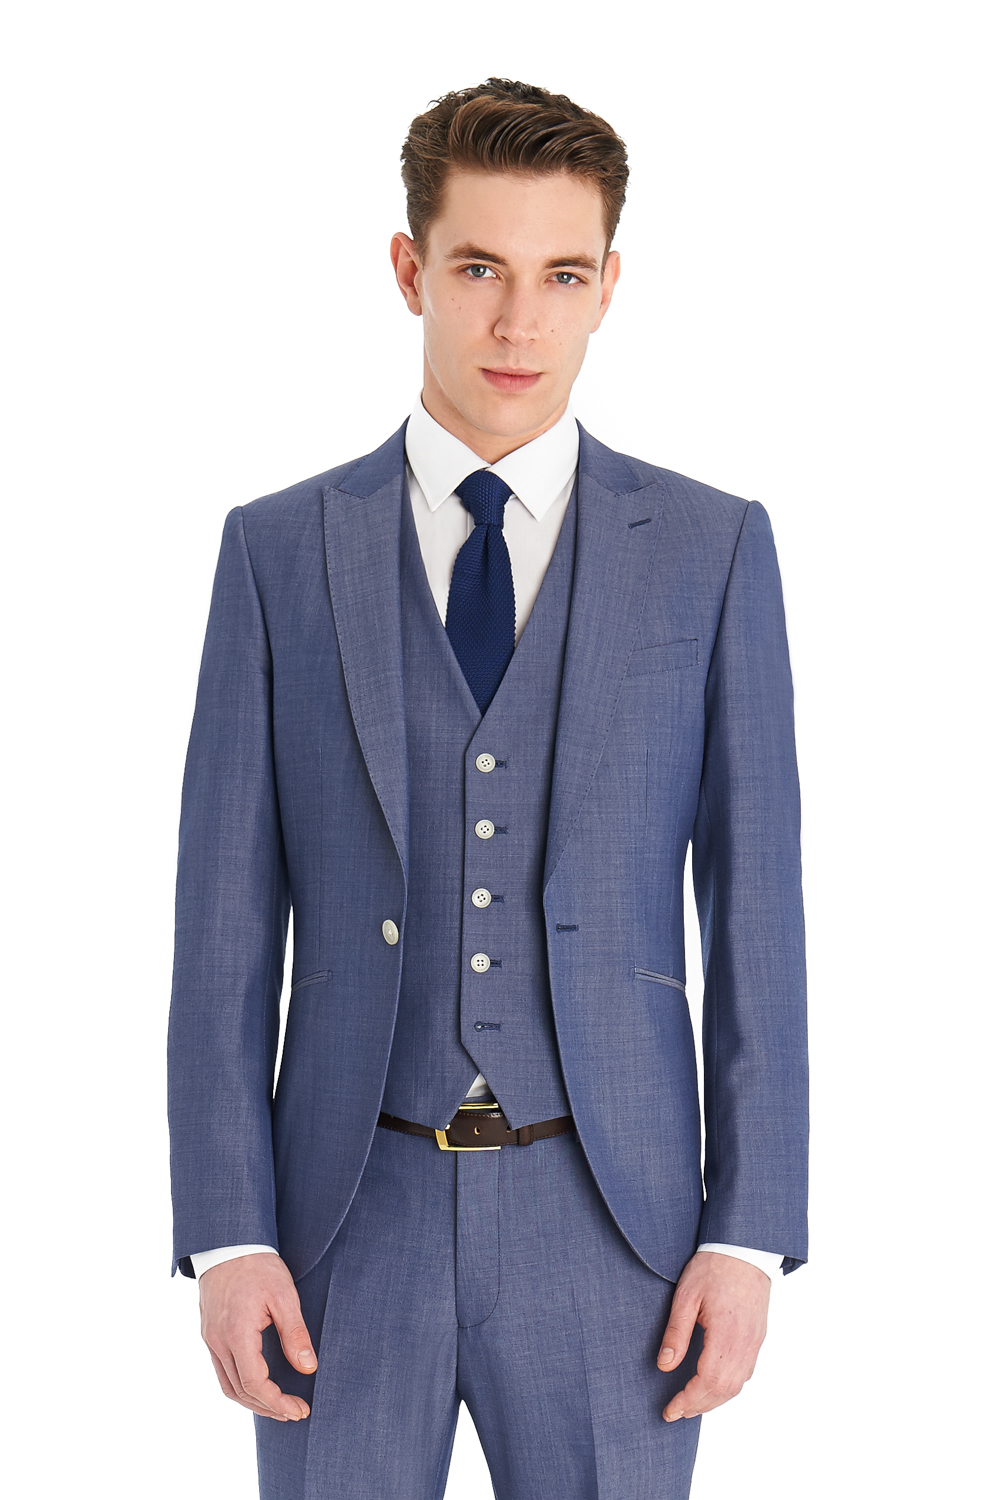 Compare Prices on Classic 3 Piece Suit- Online Shopping/Buy Low ...